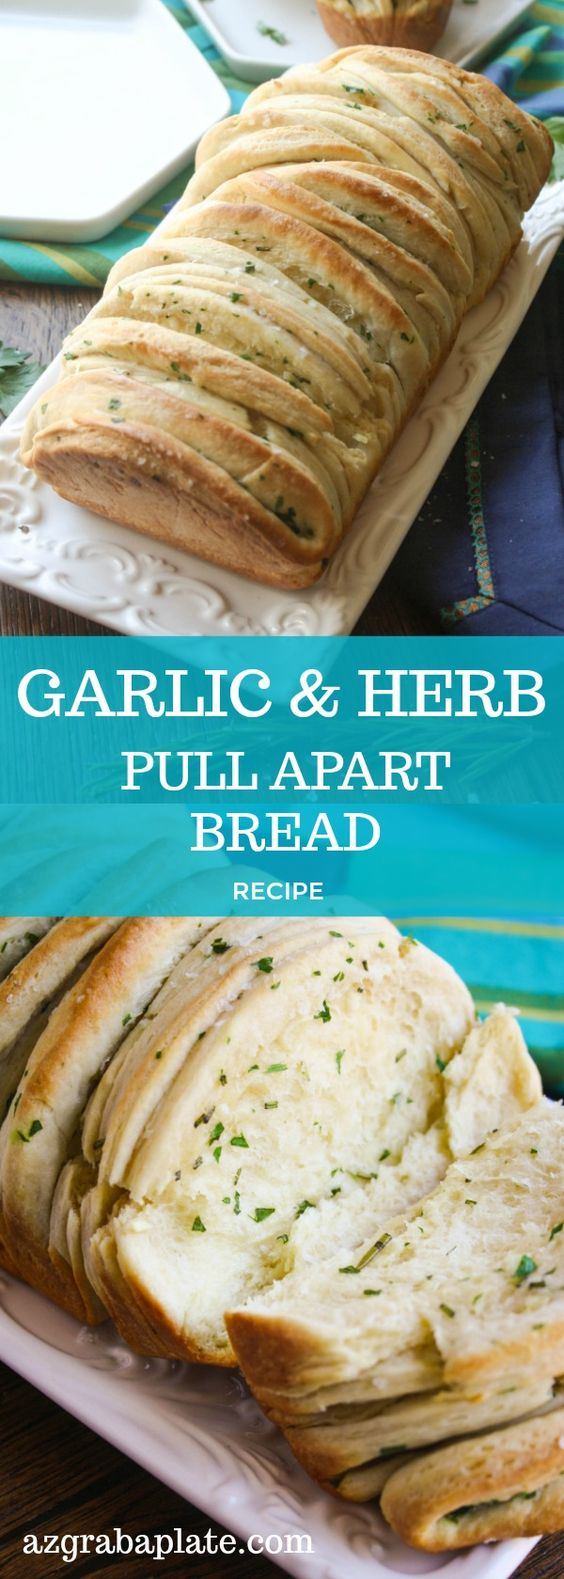 Garlic & Herb Pull Apart Bread